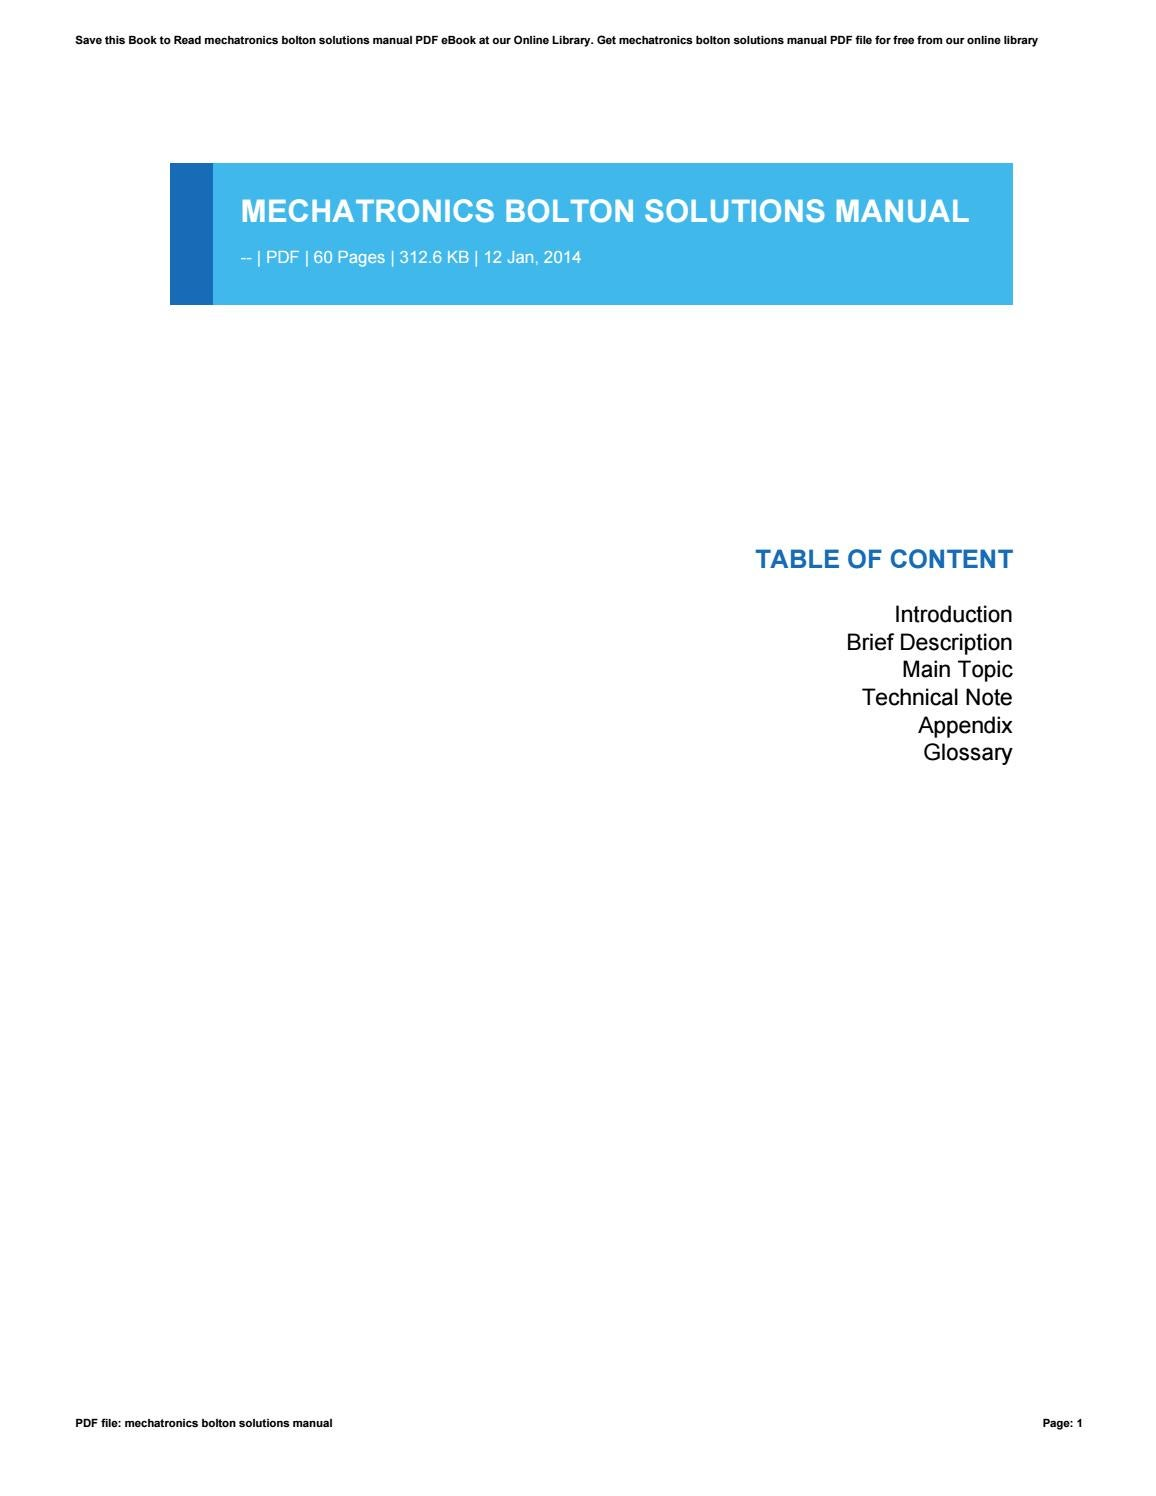 mechatronics bolton solutions manual by xing88617 issuu rh issuu com Physics Solutions Manual Textbook Solution Manuals